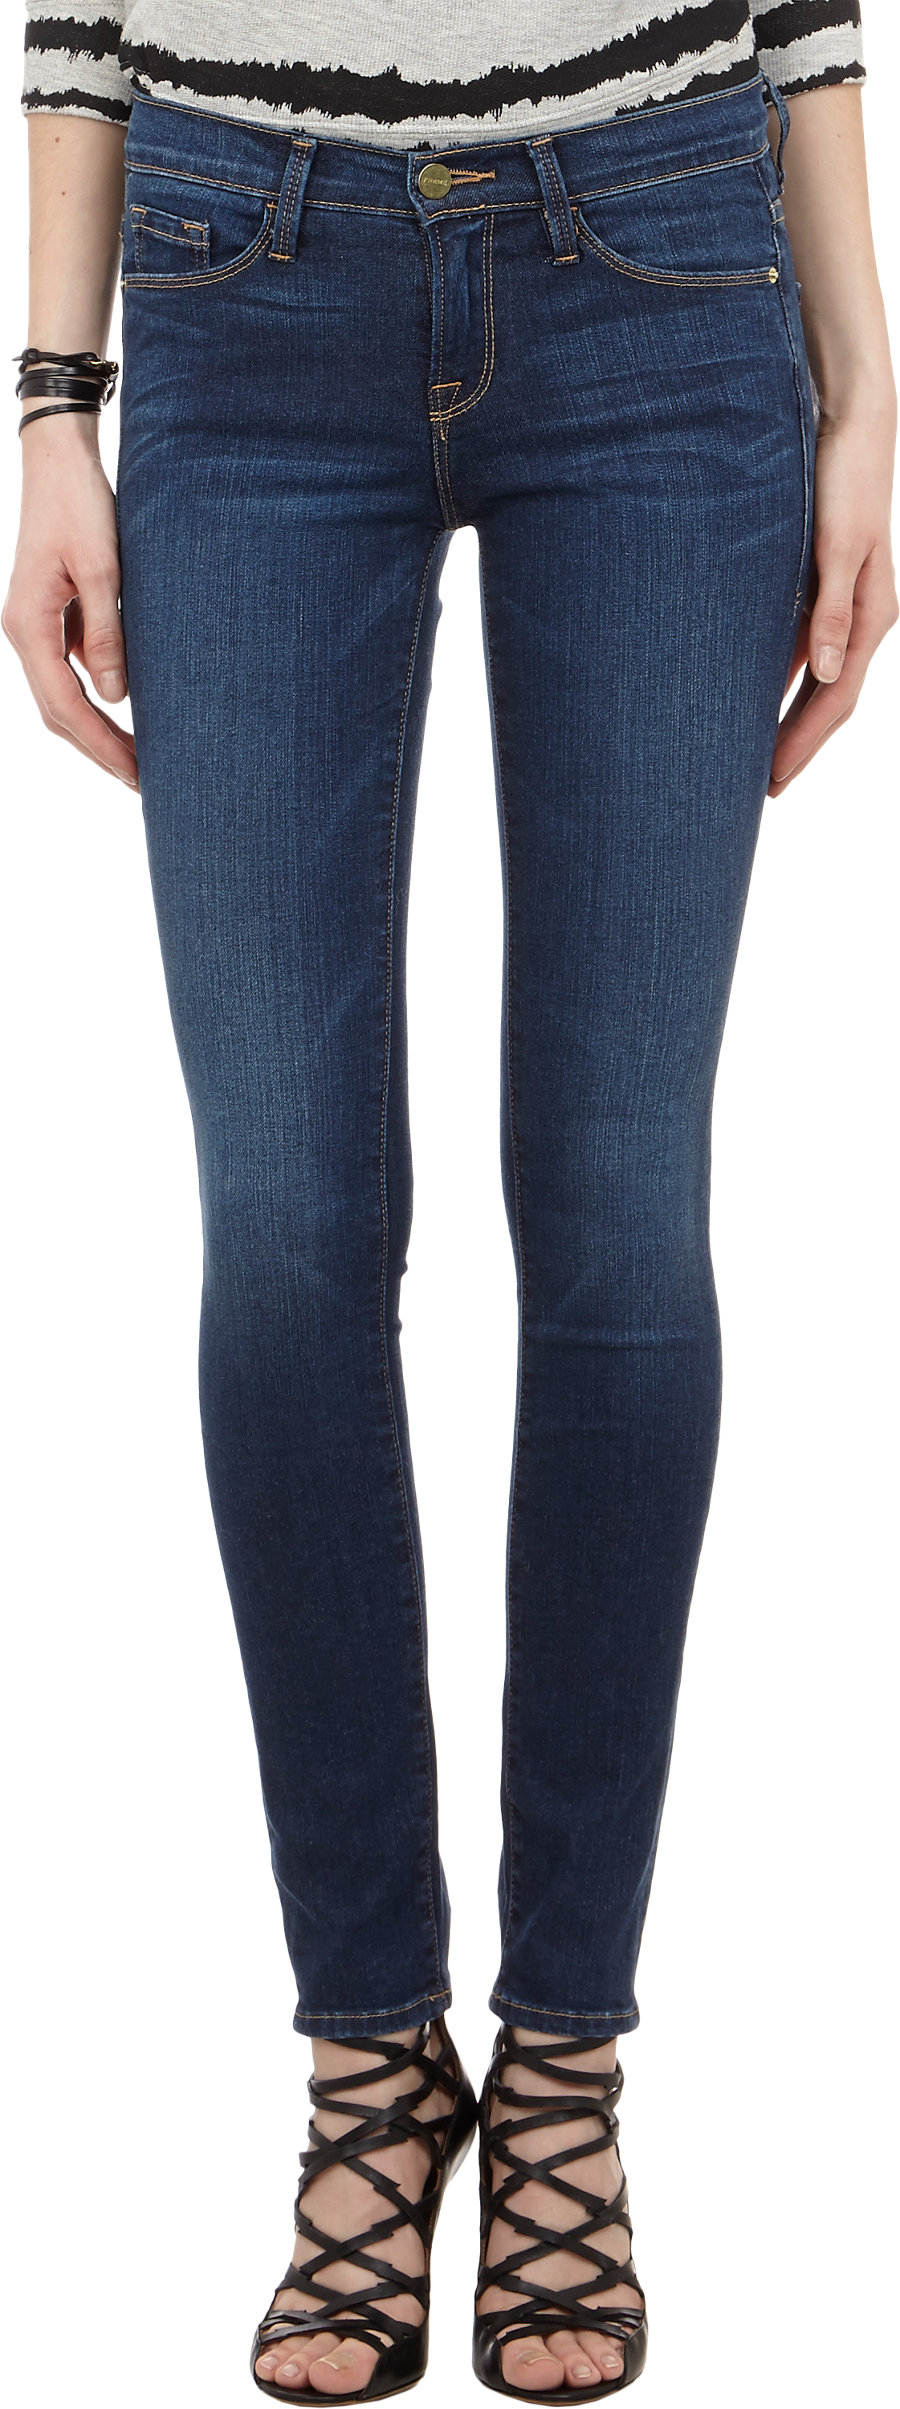 A pair of denim skinny jeans with a QUICK VIEW WARNING: This product can expose you to chemicals, including lead and/or phthalates, which are known to the State of California to cause cancer and birth defects or other reproductive harm.